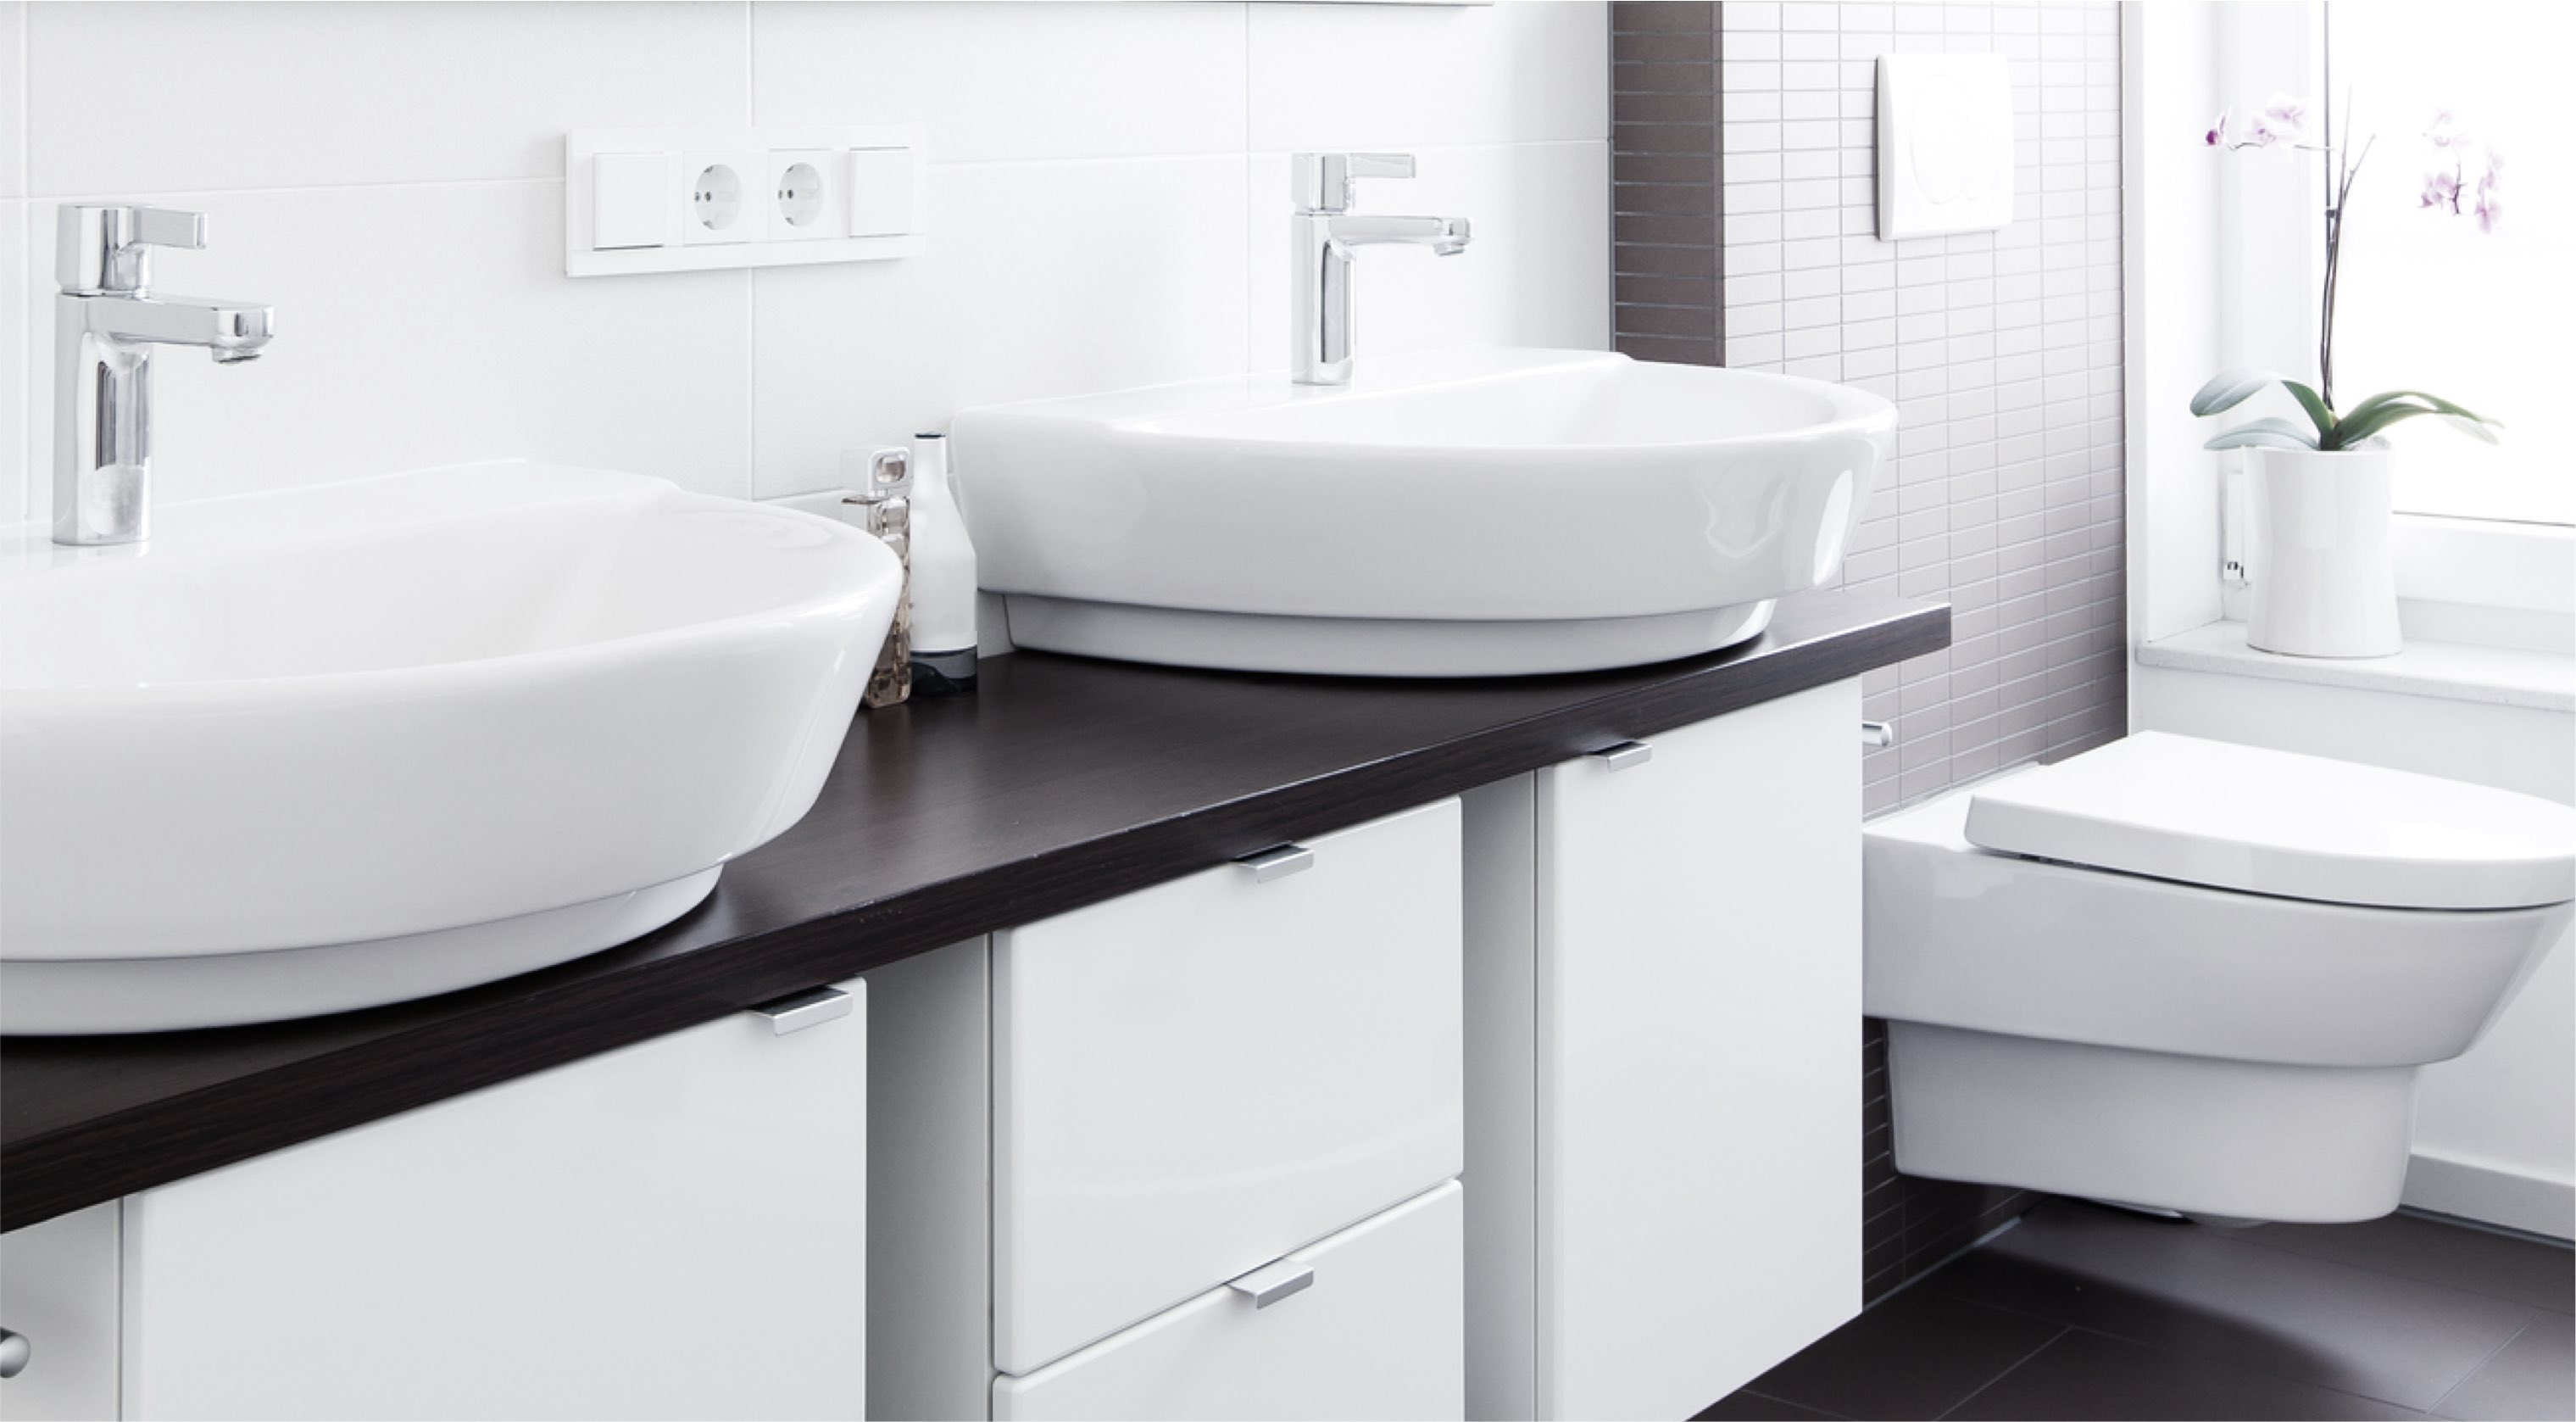 Bathroom Sink Companies House Construction Planset of dining room